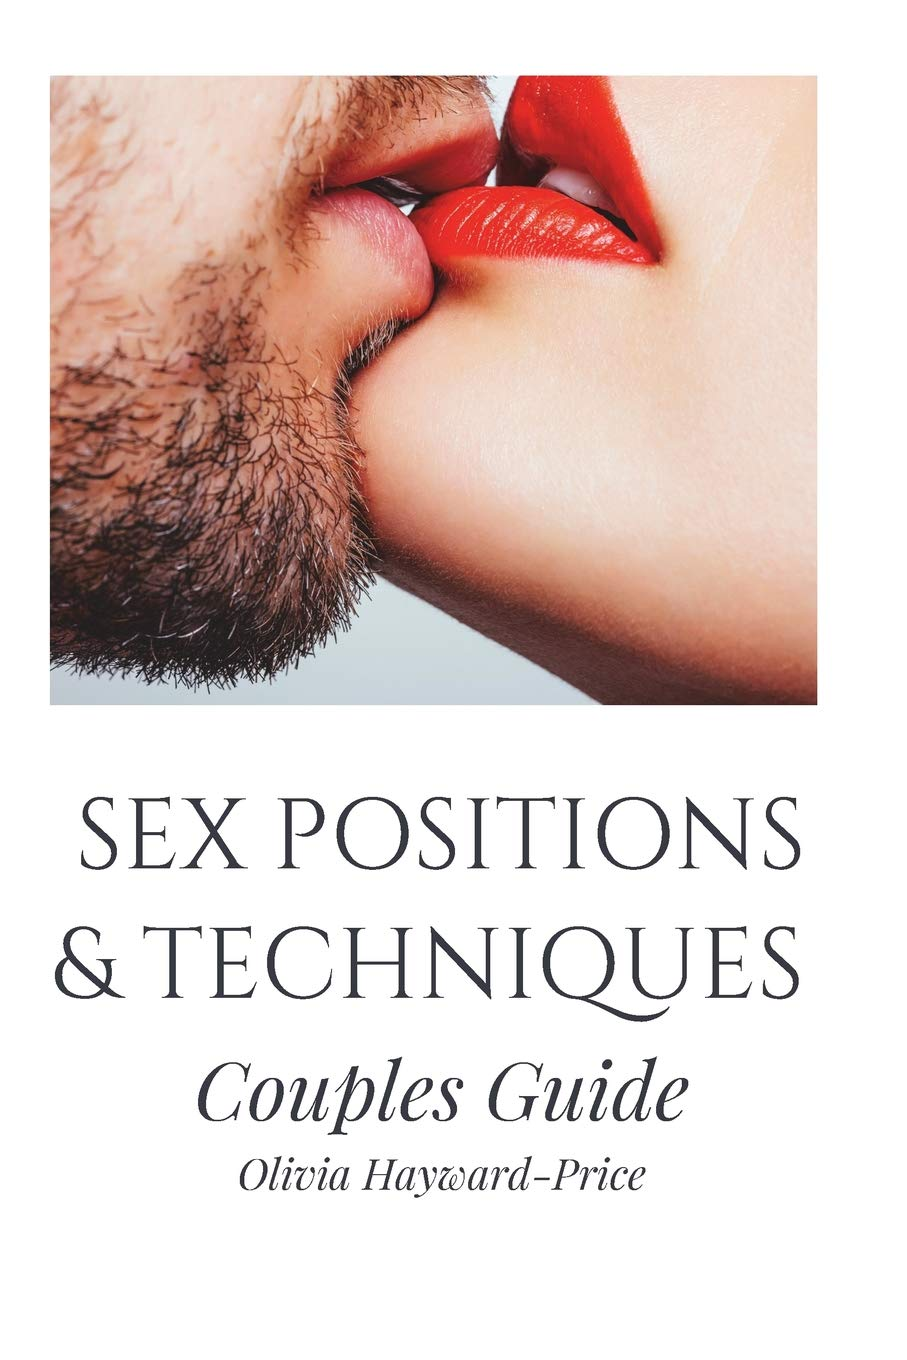 SEX POSITIONS & TECHNIQUES Couples Guide: Sex Positions, Sex Guide, Tantric  Sex, Kama Sutra Paperback – August 30, 2017